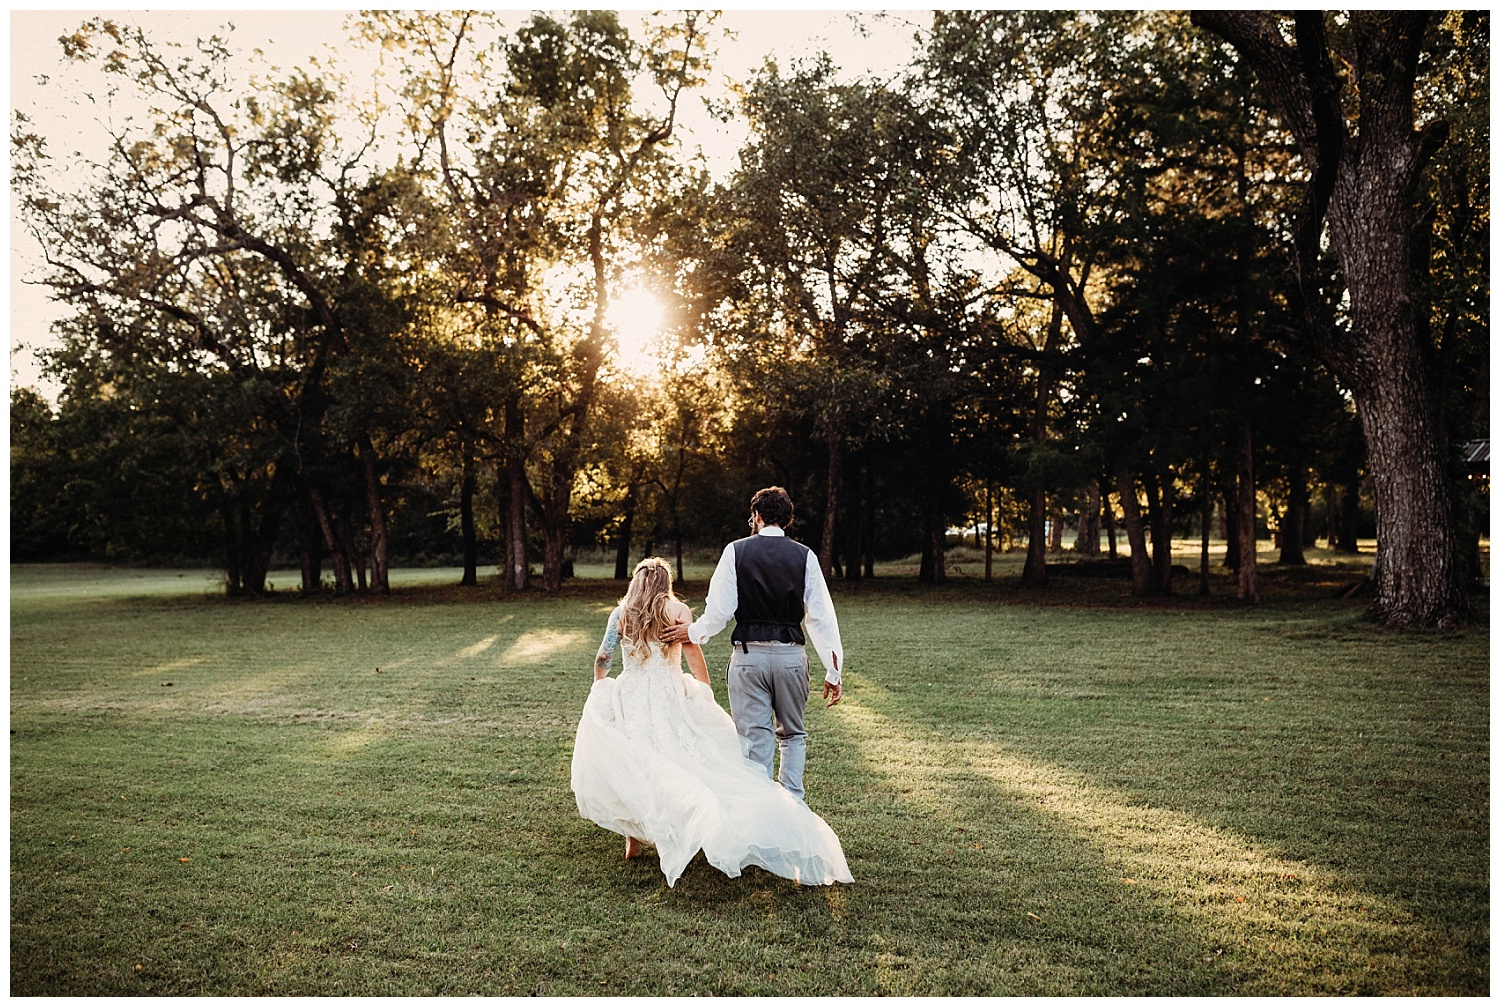 Bride and Groom walking in tress at Golden Hour on their wedding day.